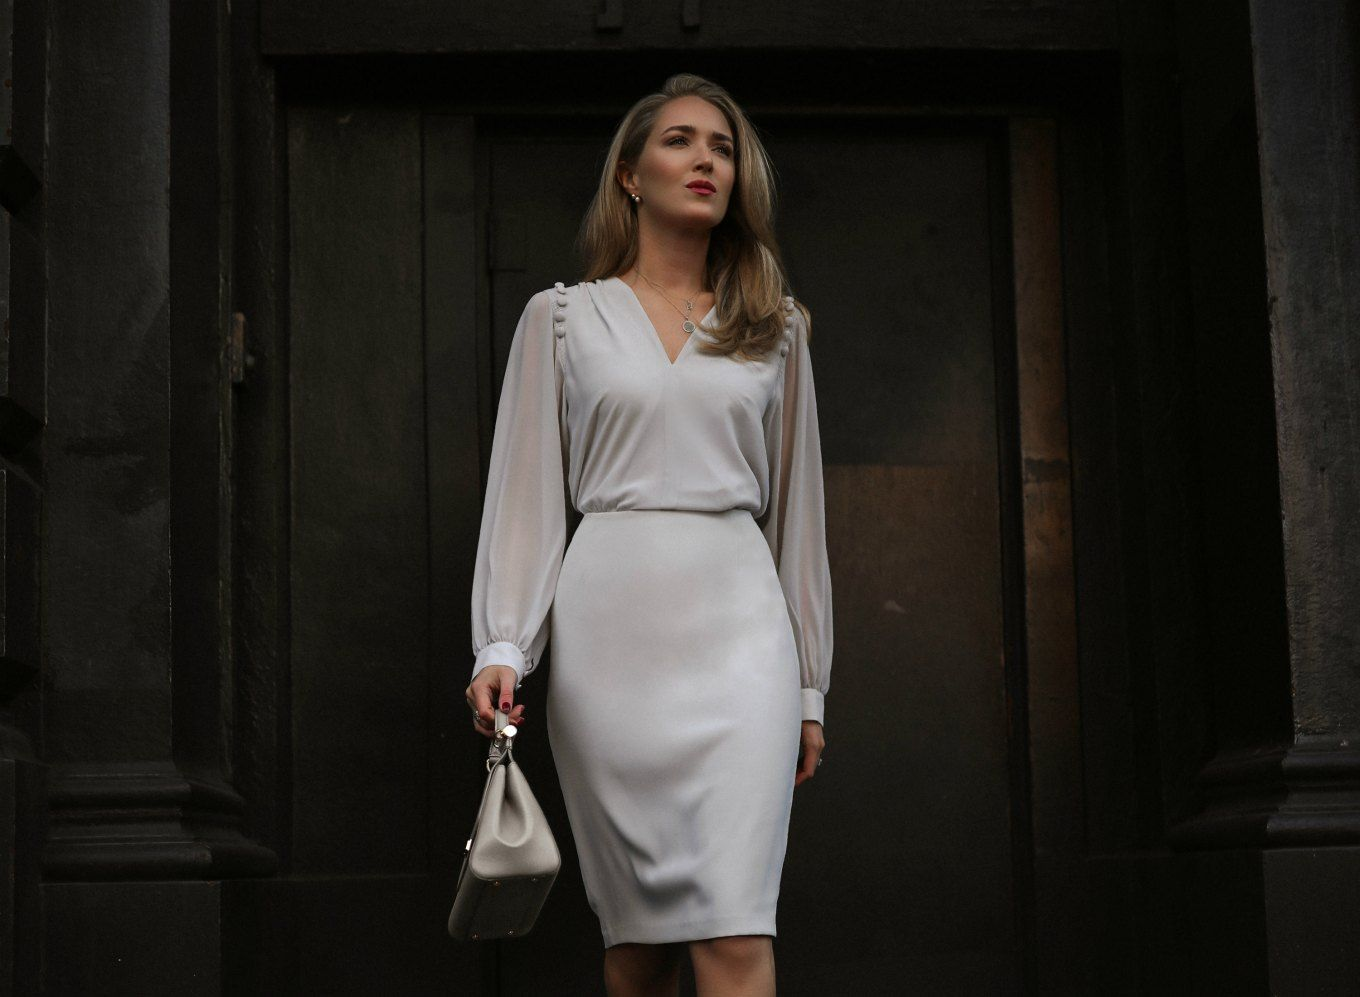 c970f09b46 NYC style blogger in light grey Reiss dress with grey handbag ...